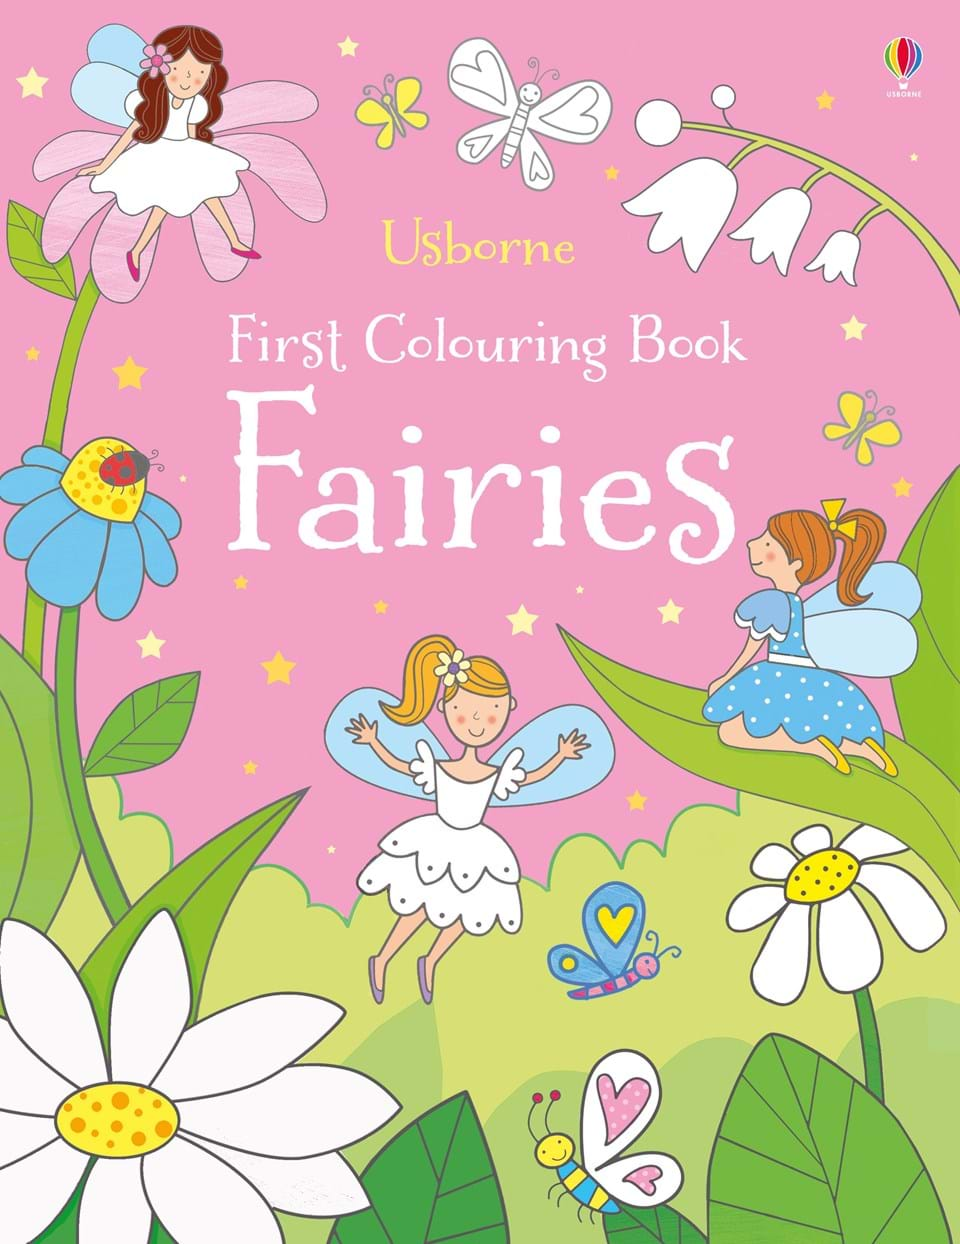 First Colouring Book : Fairies